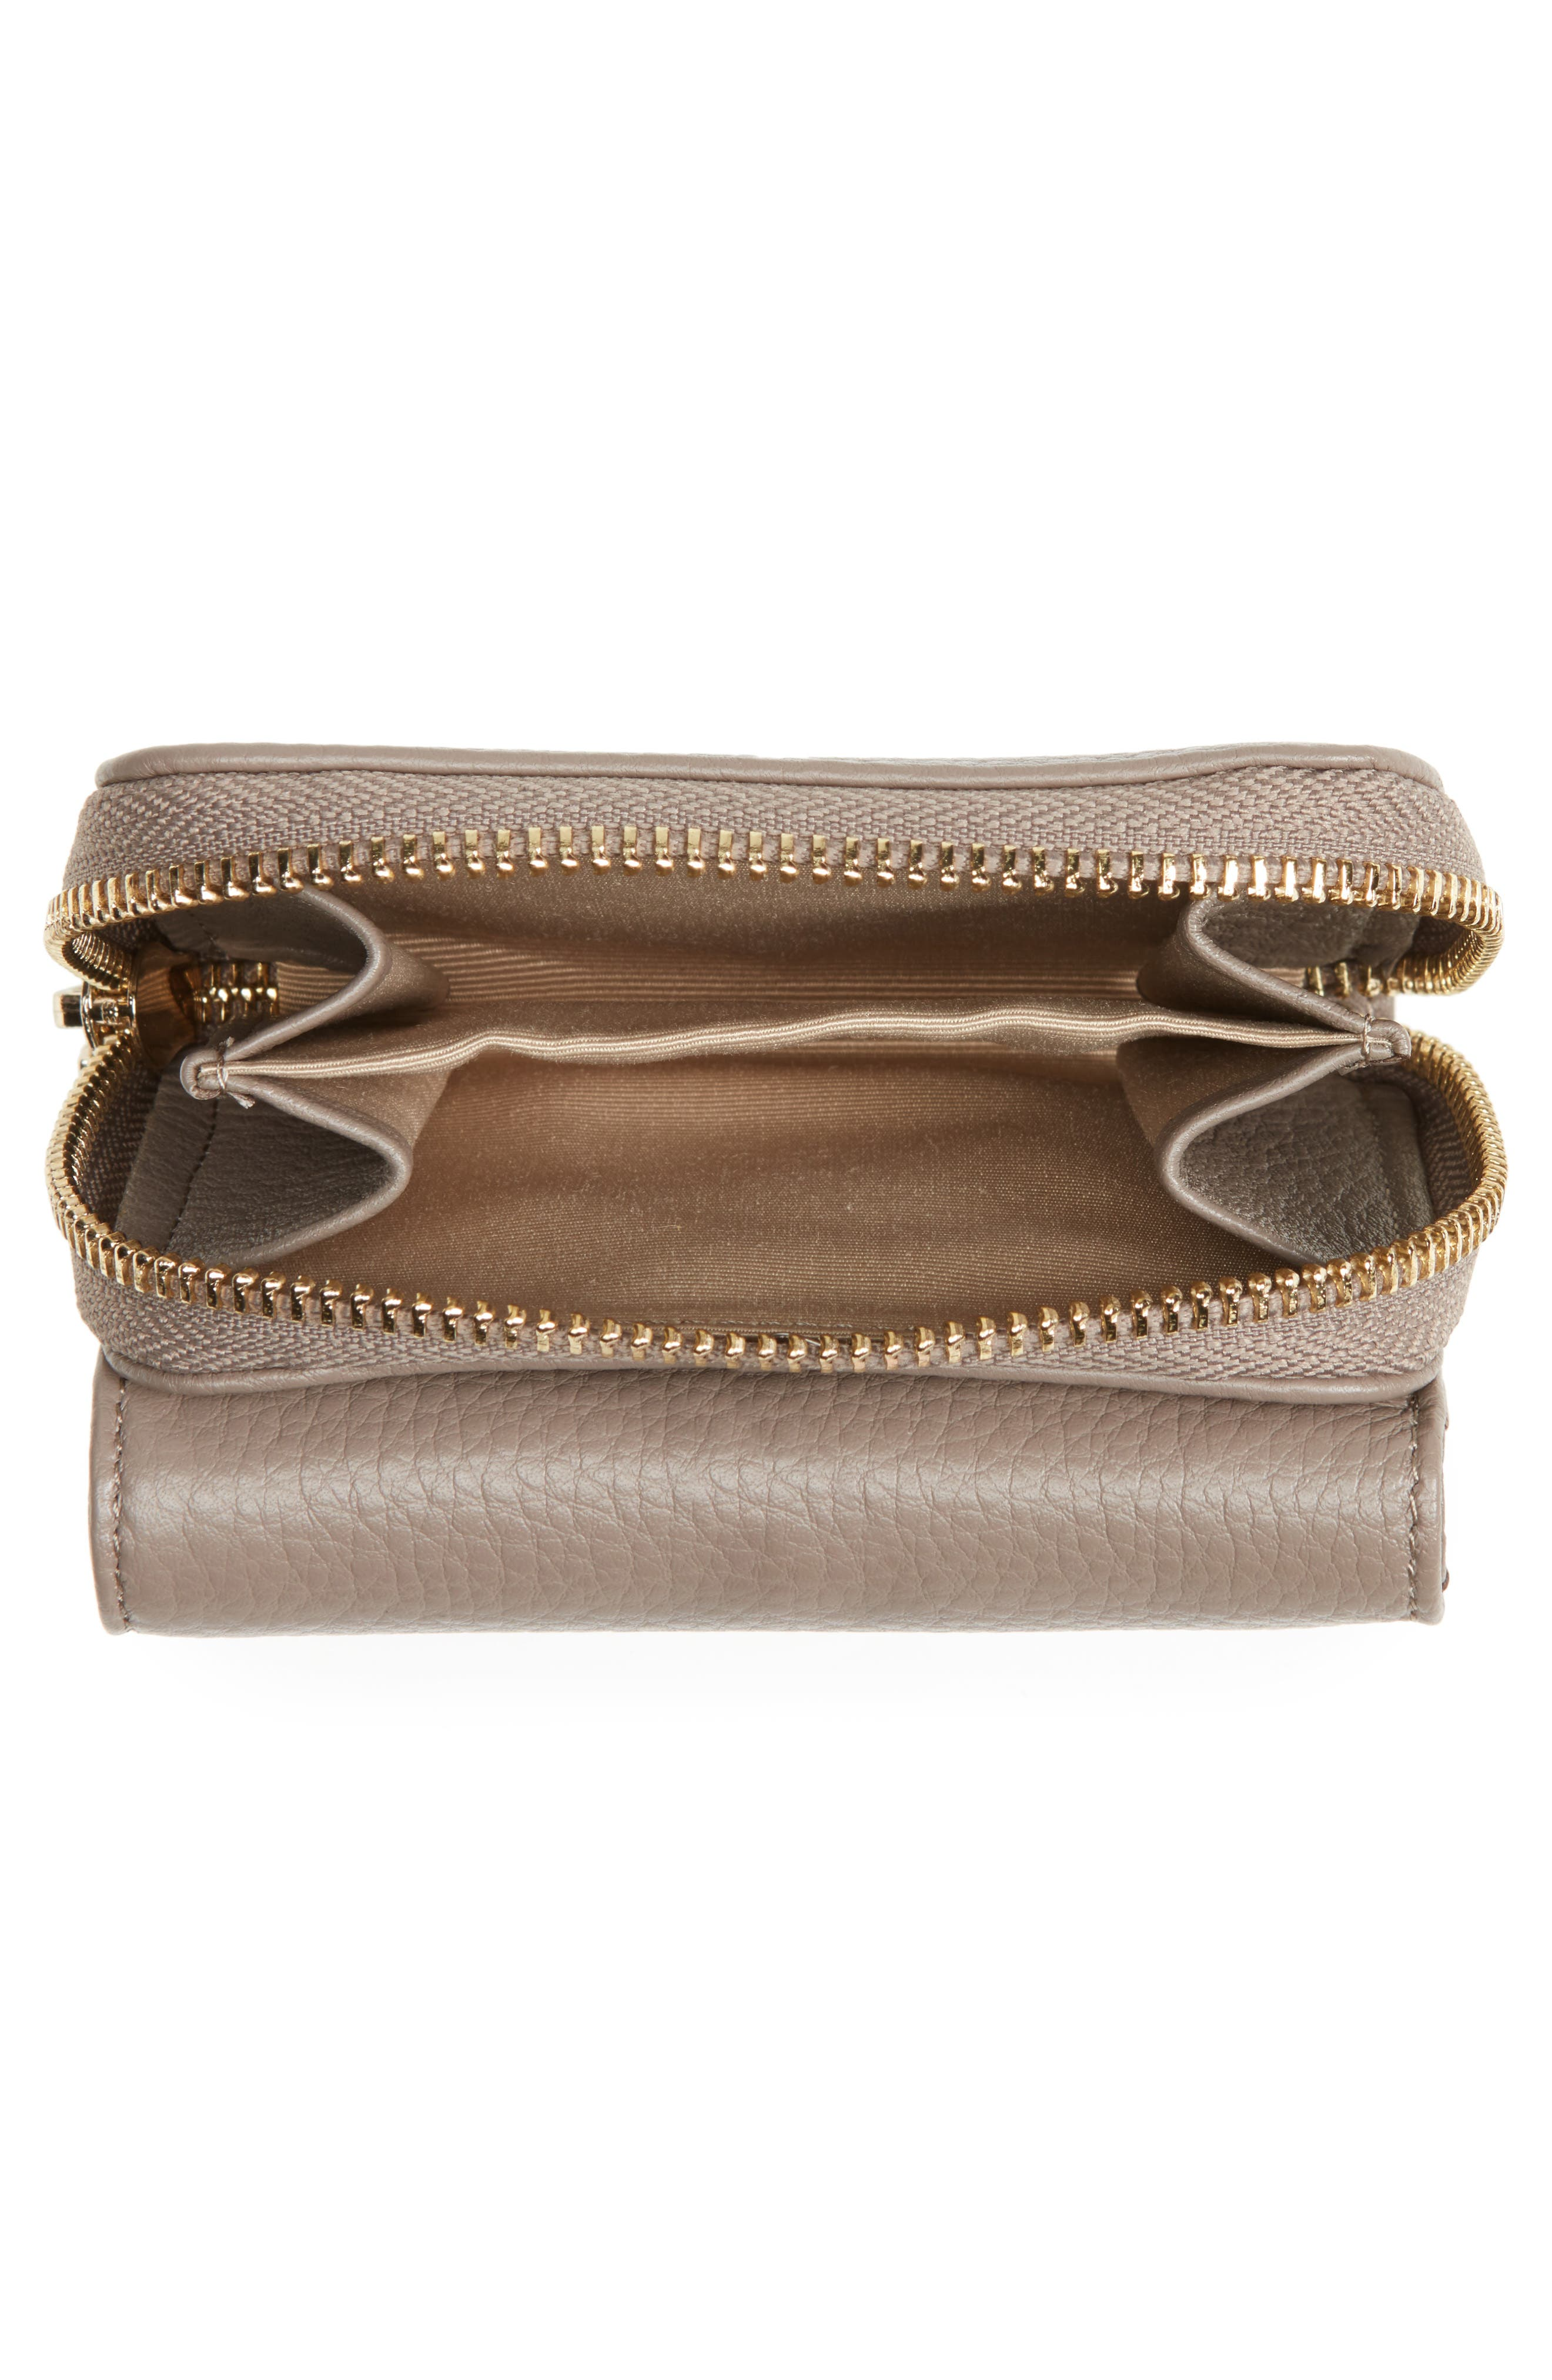 Céline Dion Small Adagio Leather Wallet,                             Alternate thumbnail 7, color,